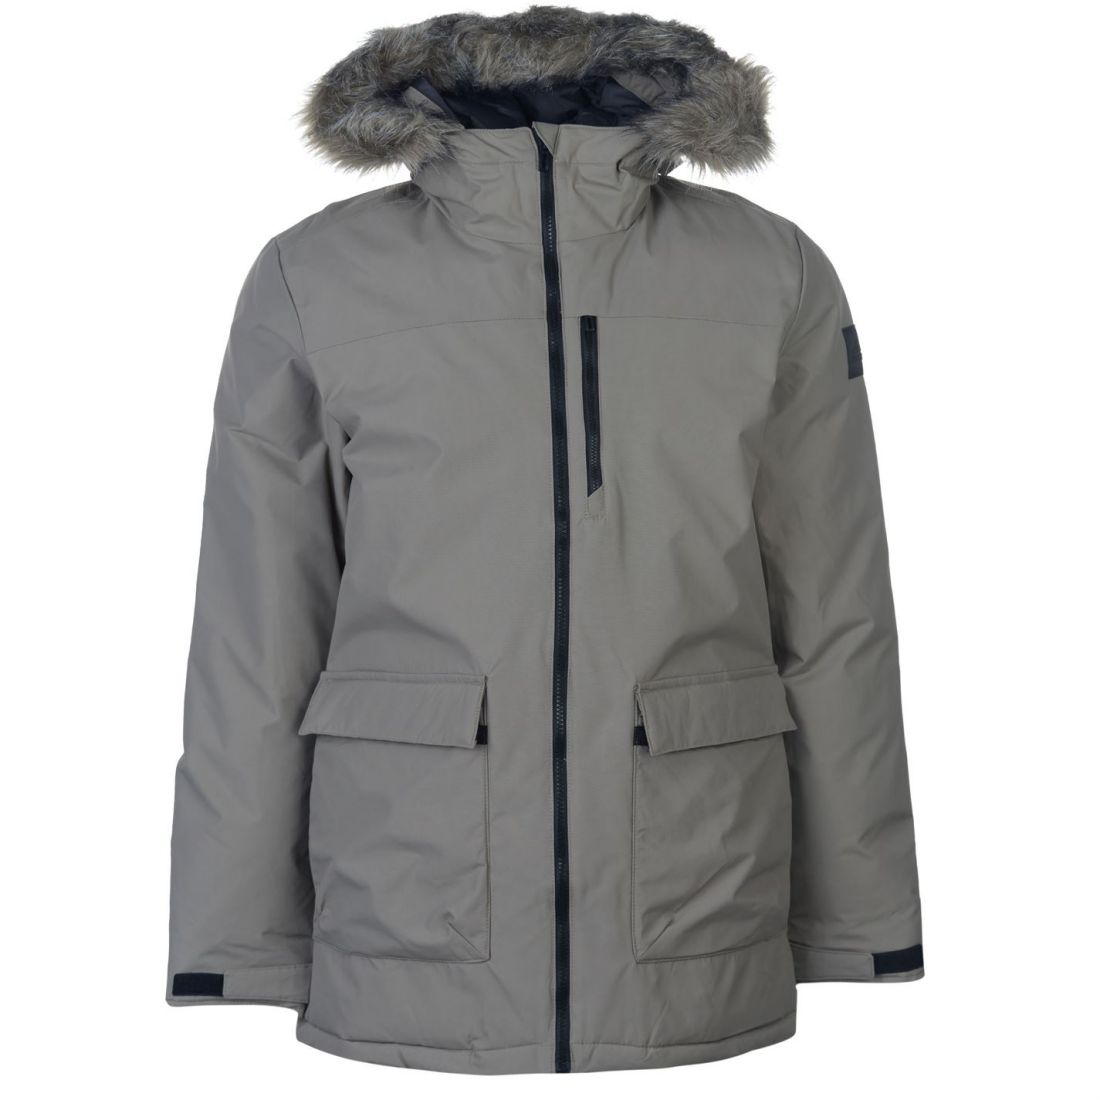 636285258 Details about adidas Xploric Parka Jacket Mens Gents Puffer Coat Top Full  Length Sleeve Hooded